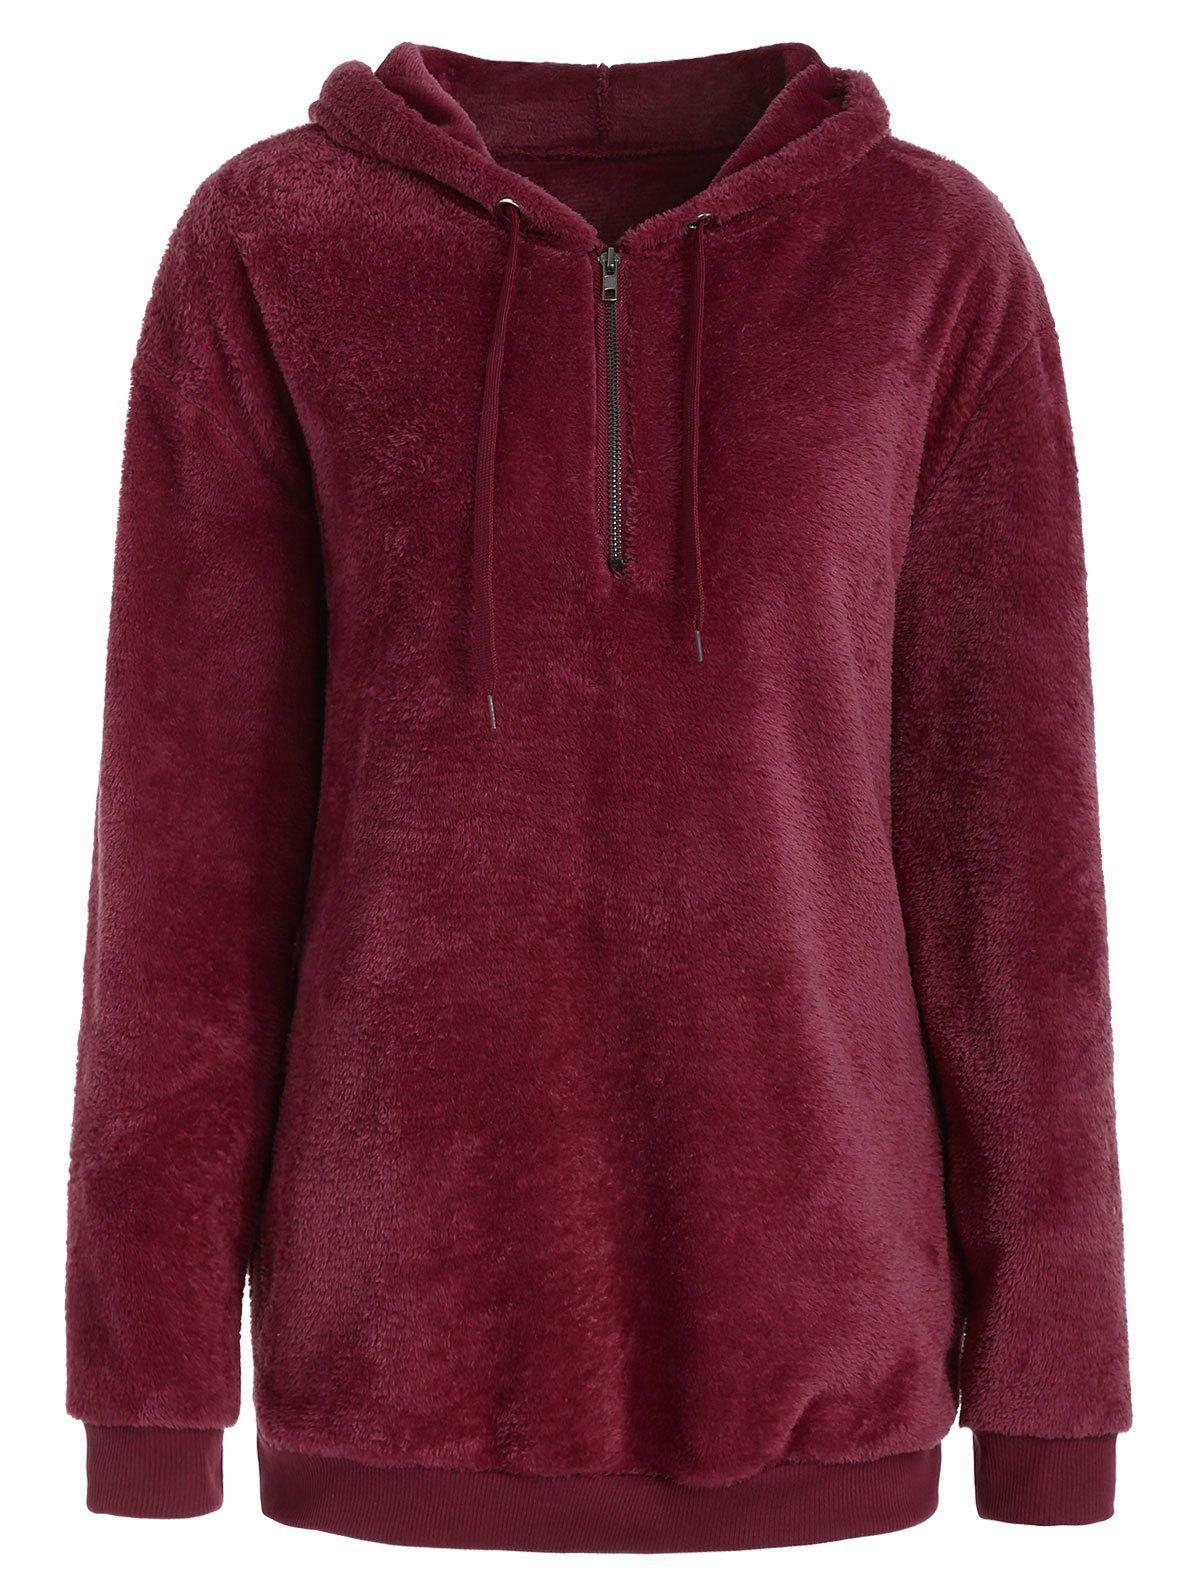 Latest Half Zipper Fluffy Hoodie with Pockets